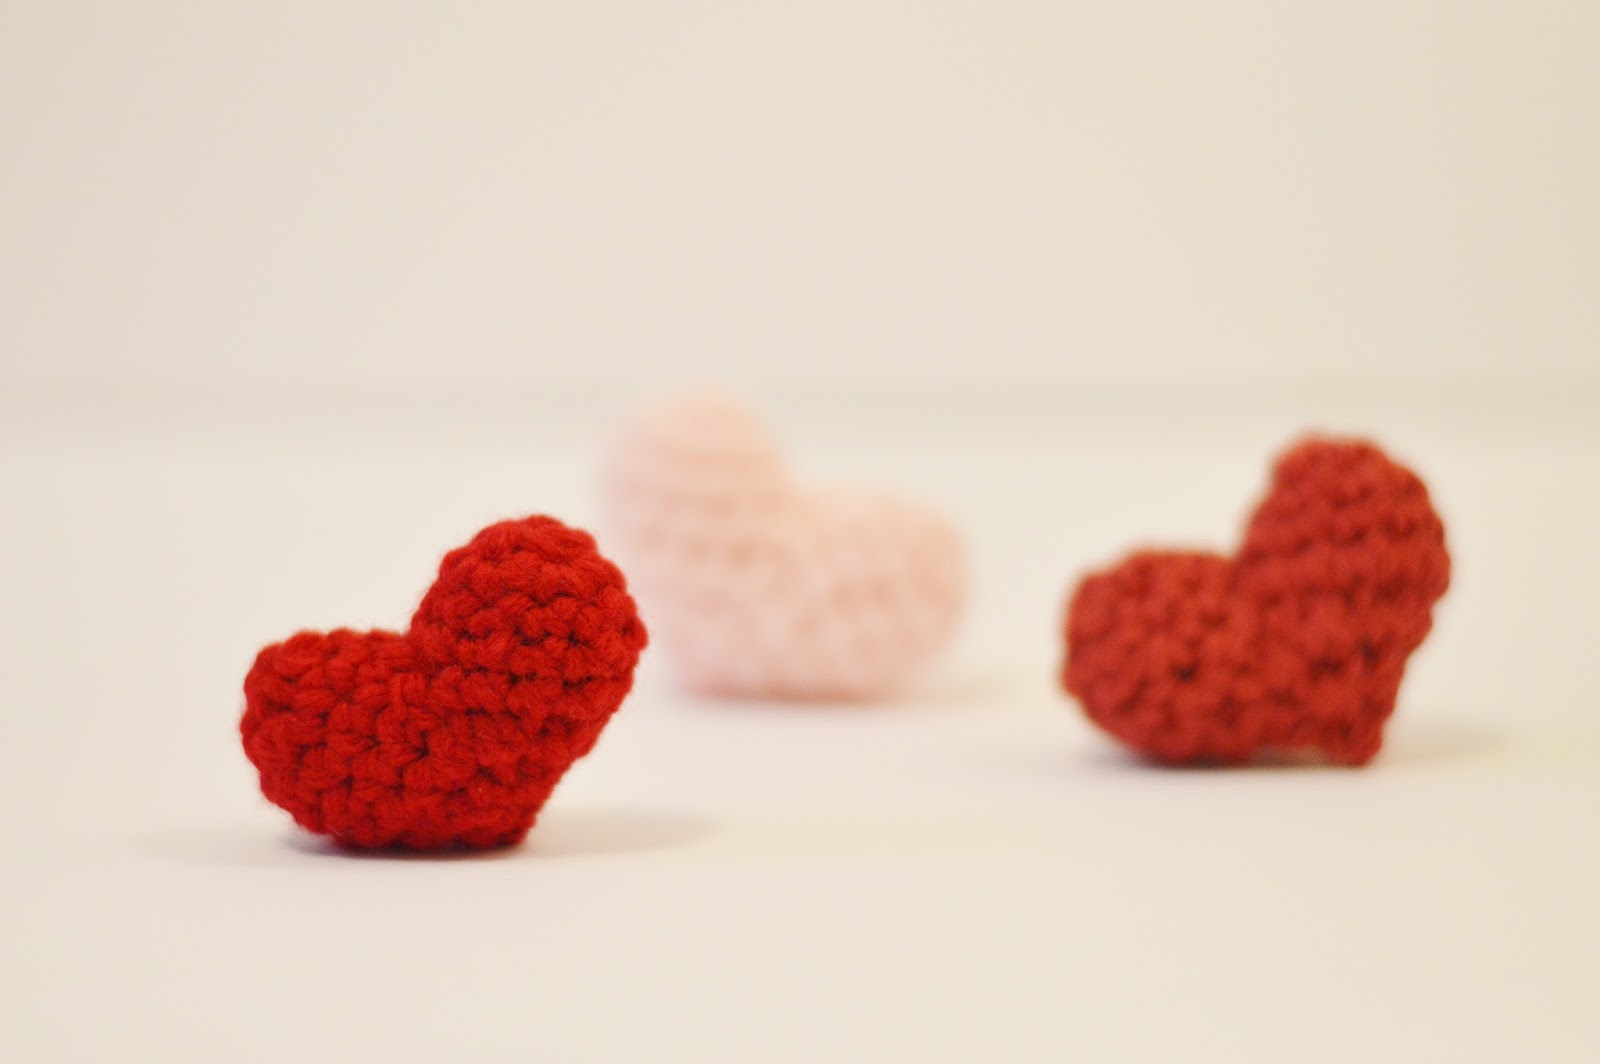 Amigurumi Love Heart Patterns : With alex: how to crochet an amigurumi heart free pattern and video